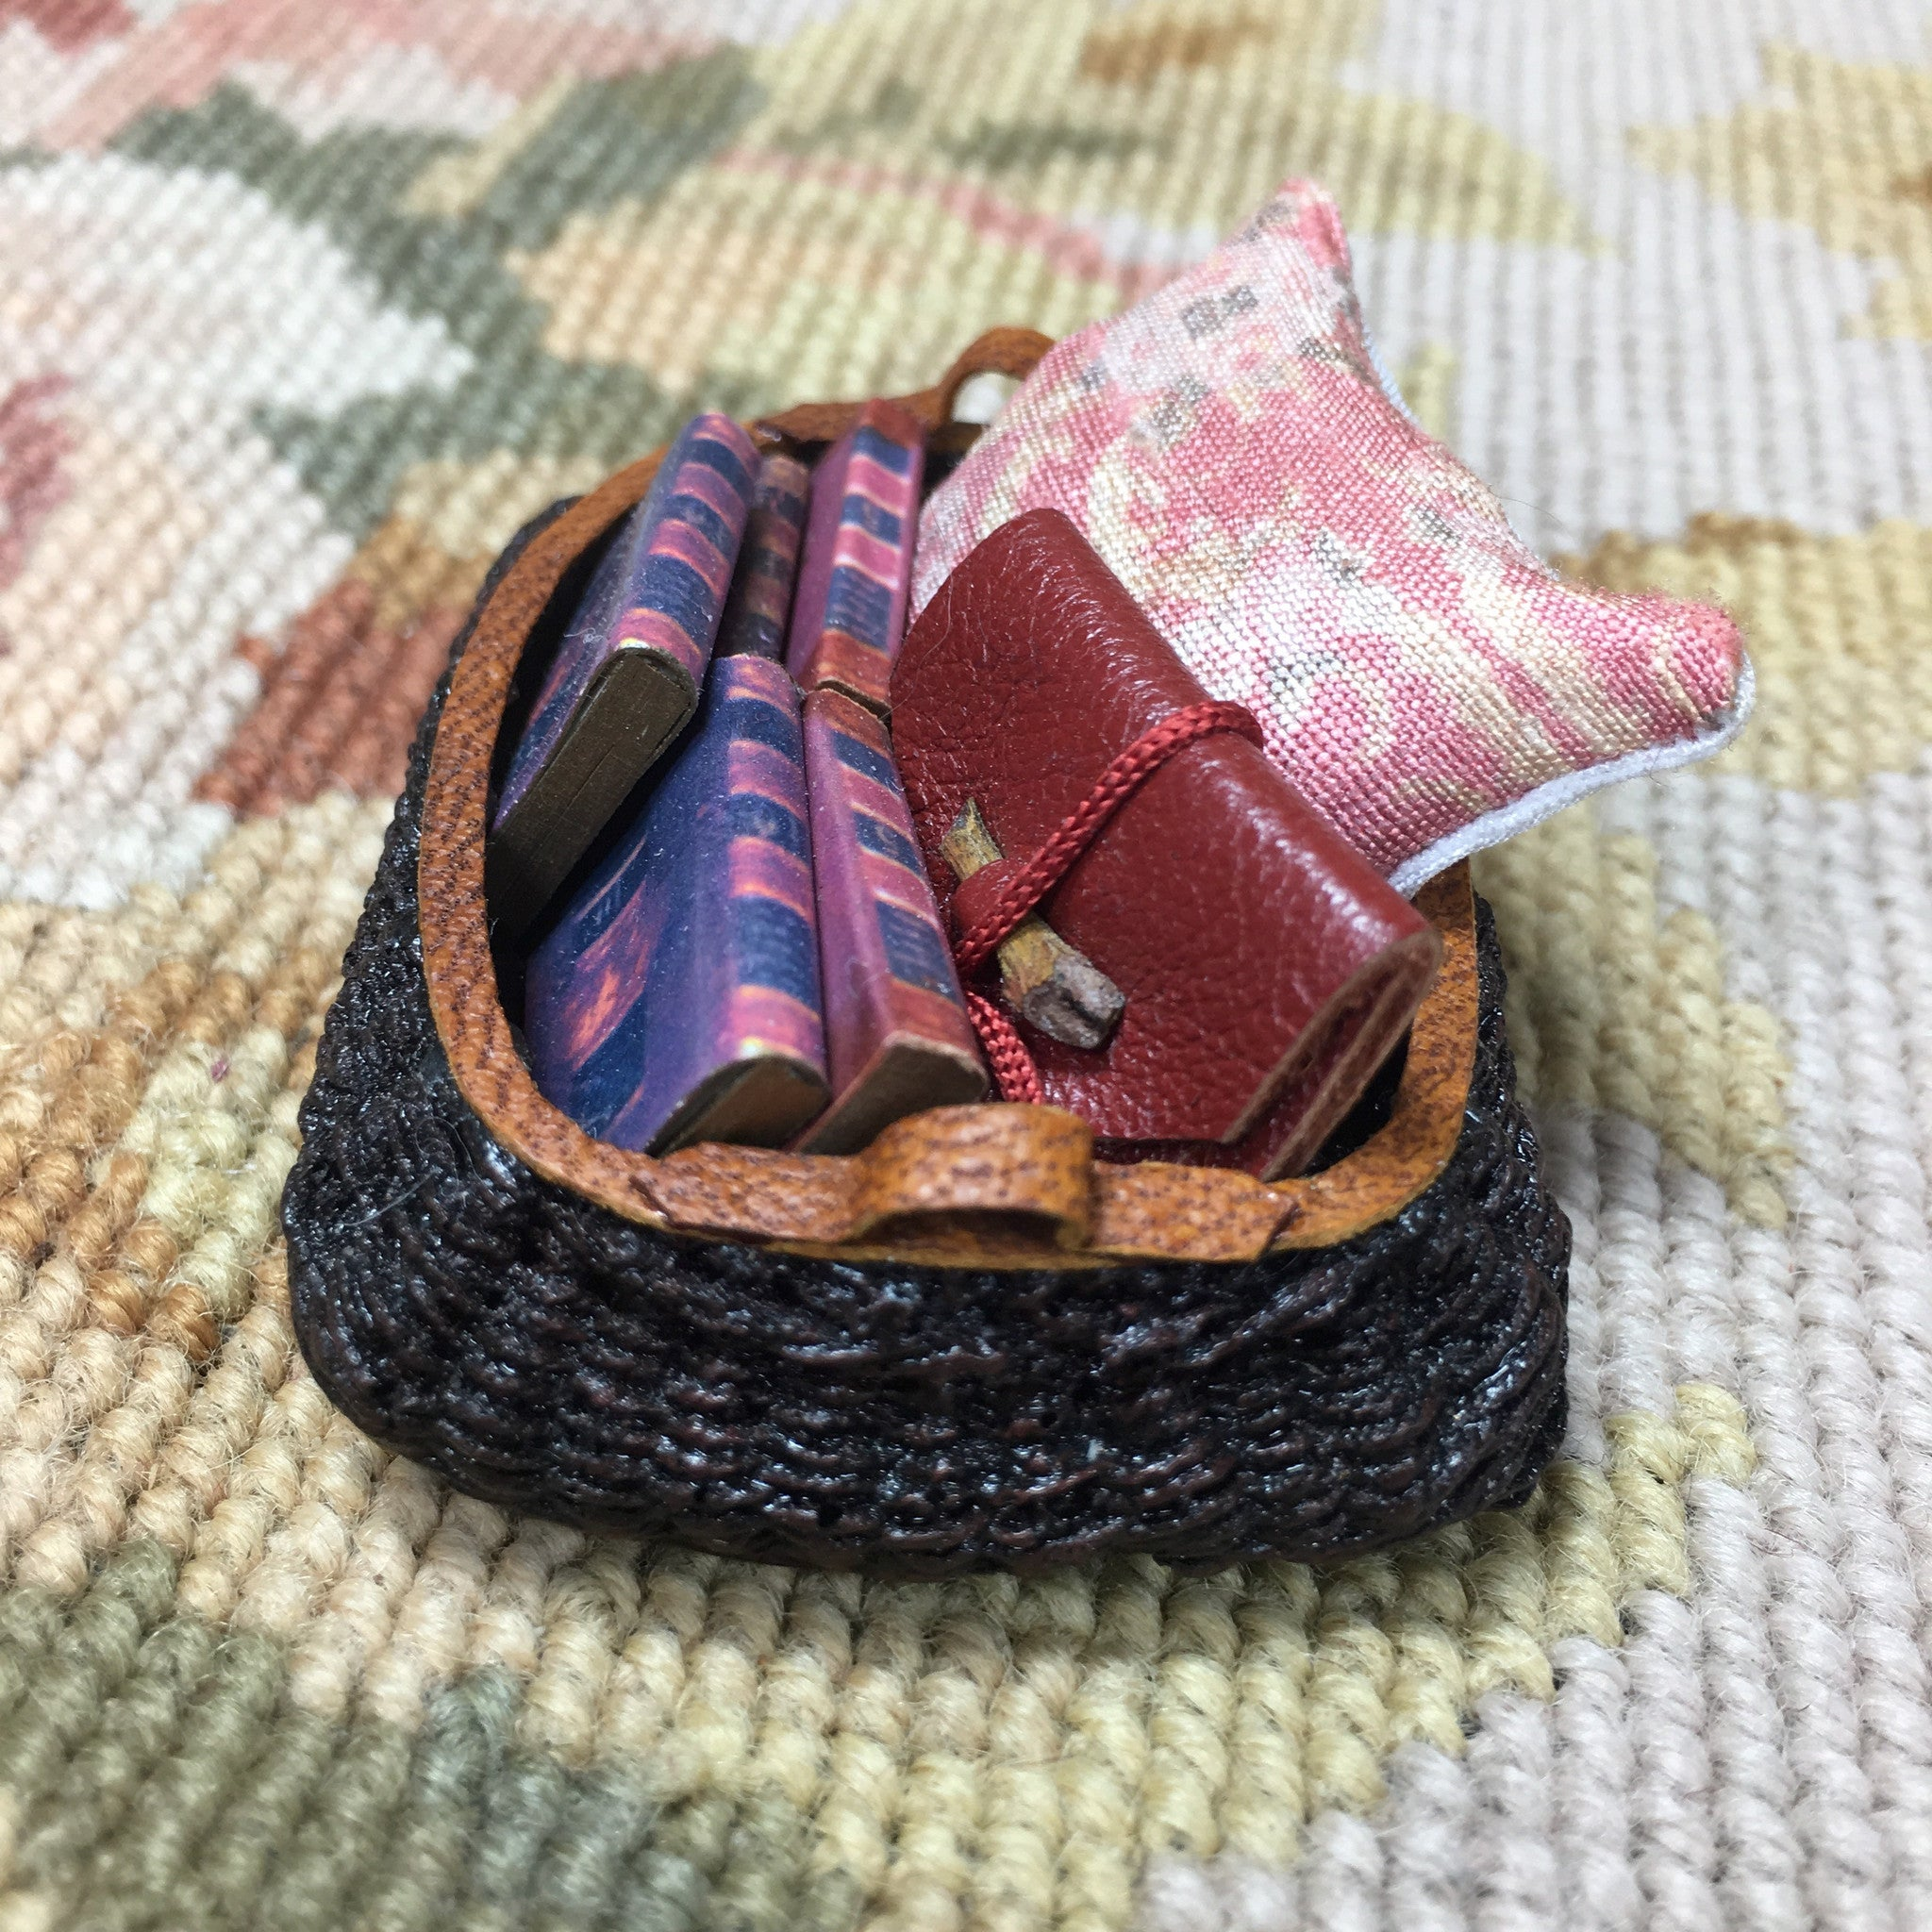 Basket Container with Leather Trim Filled With Pillow, Books, Pouch 1:12 Dollhouse Miniature